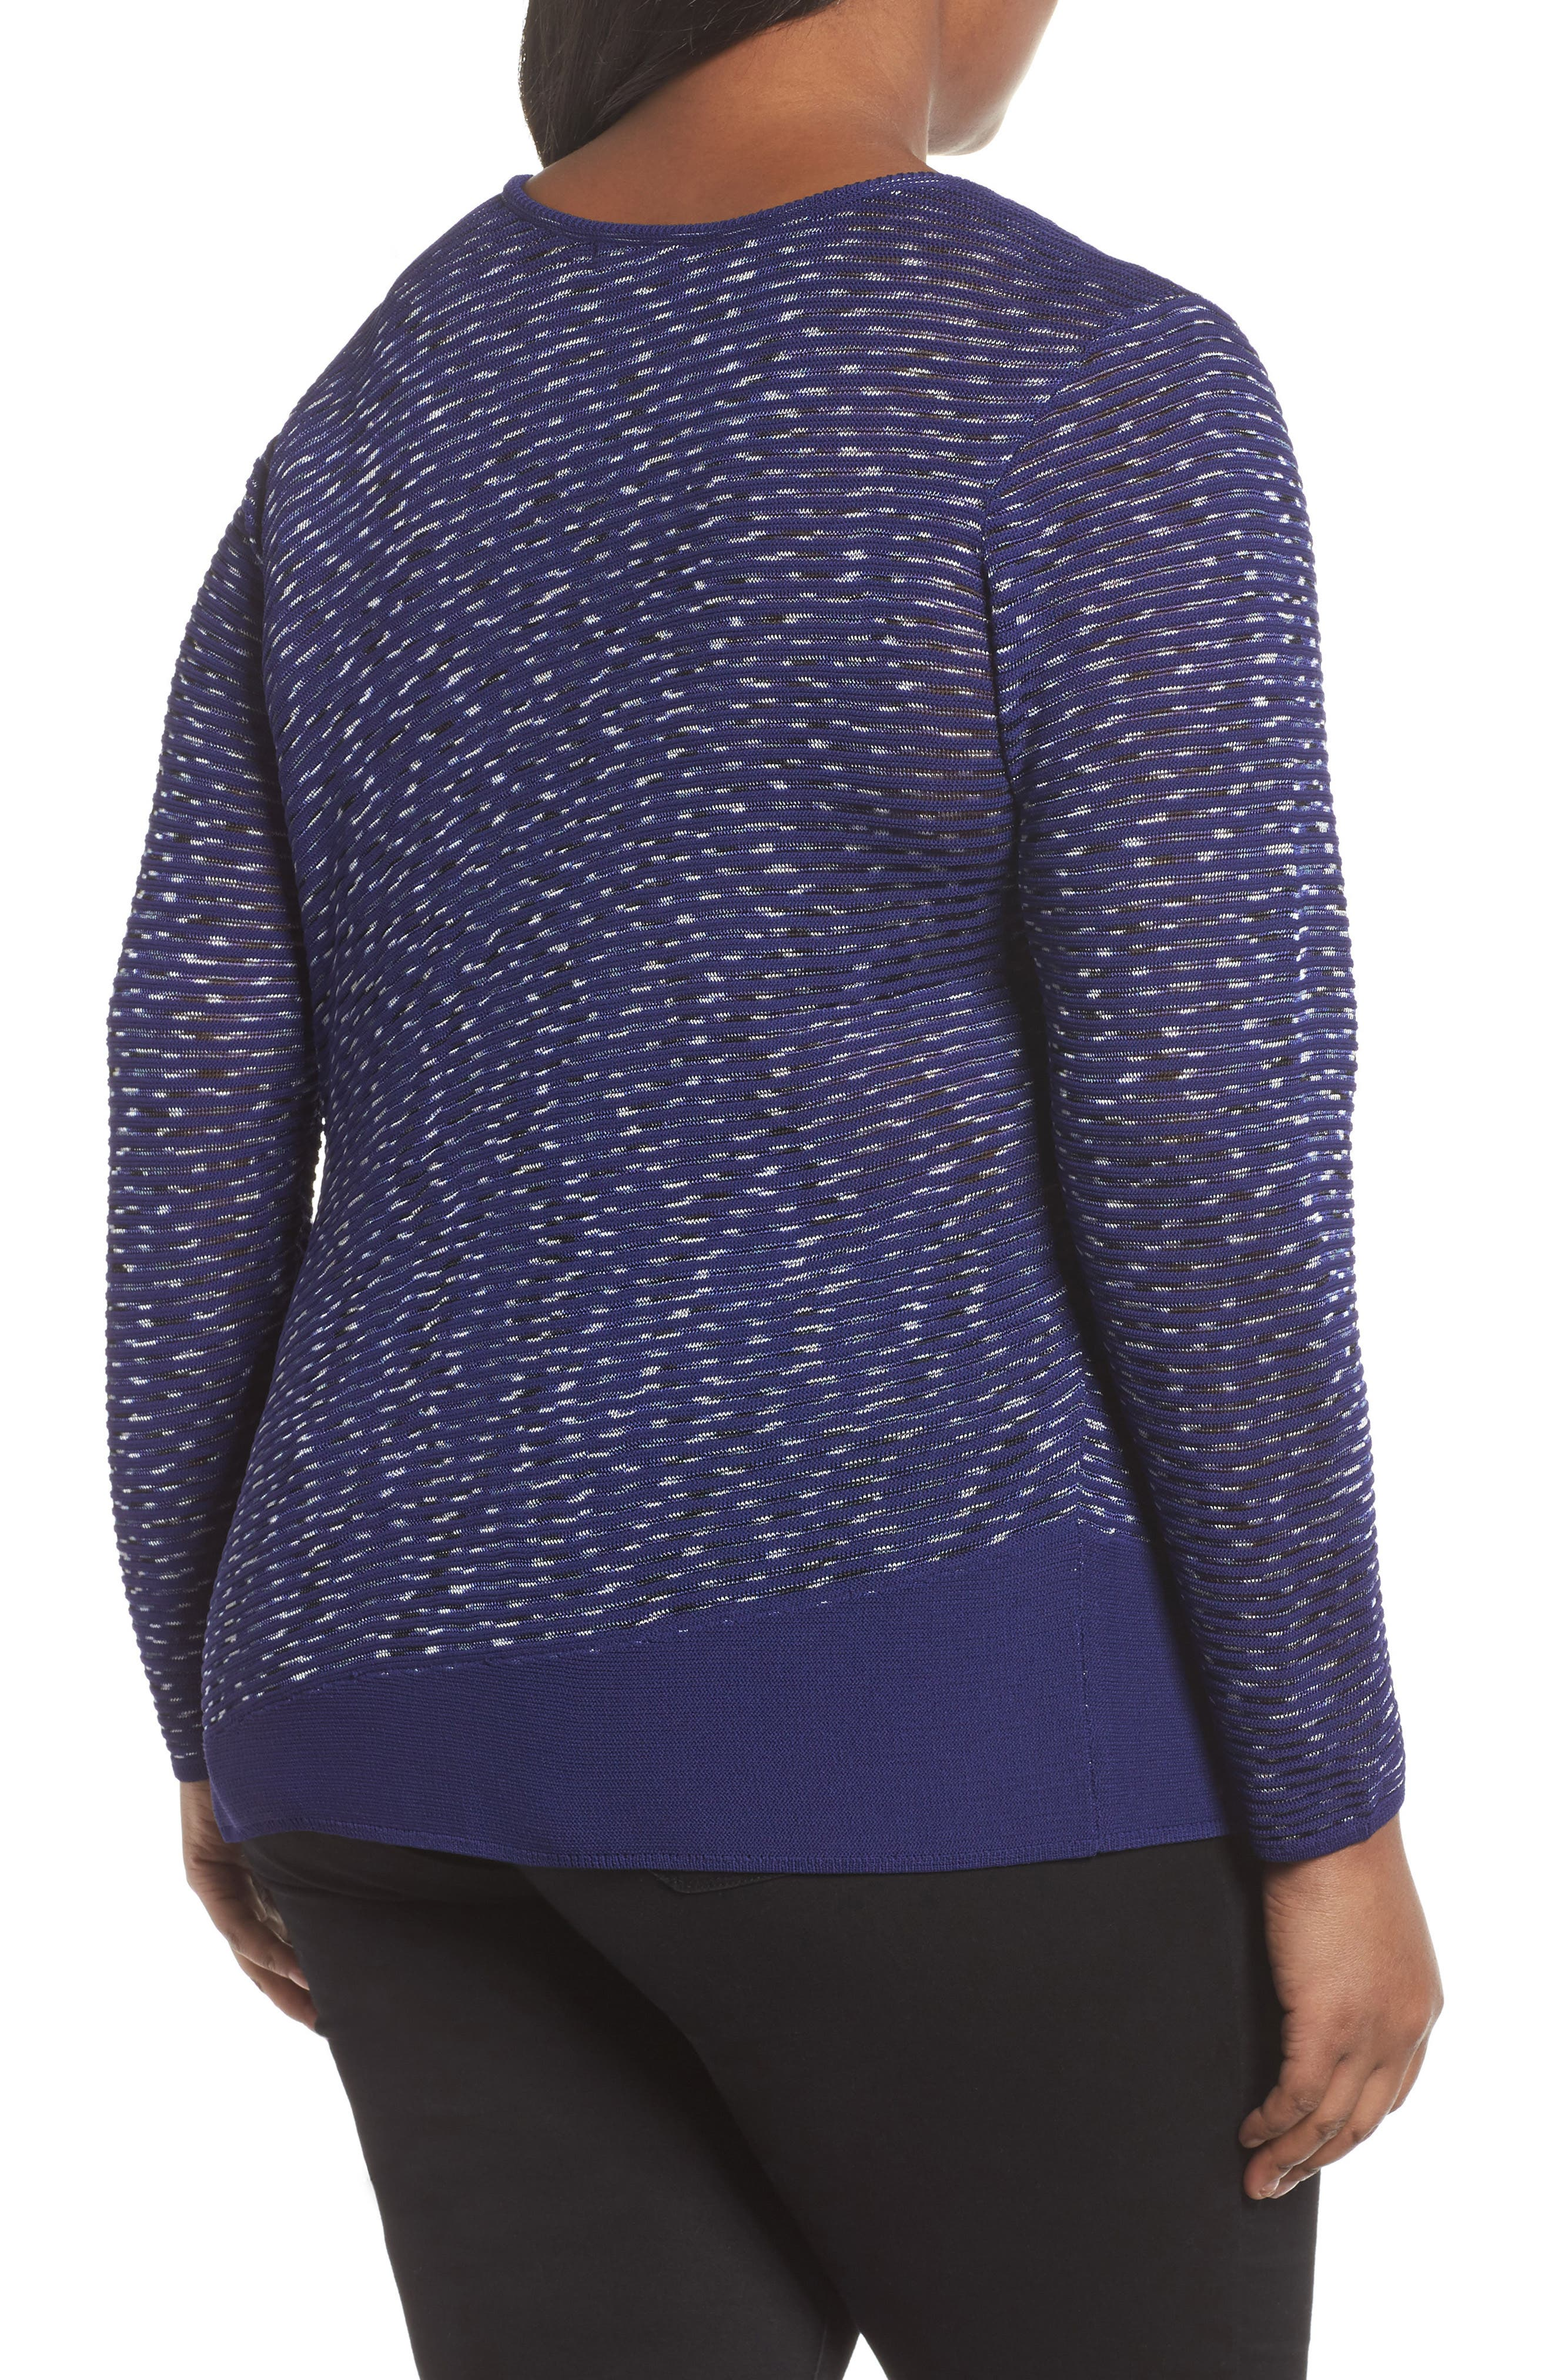 This Is Living Knit Top,                             Alternate thumbnail 4, color,